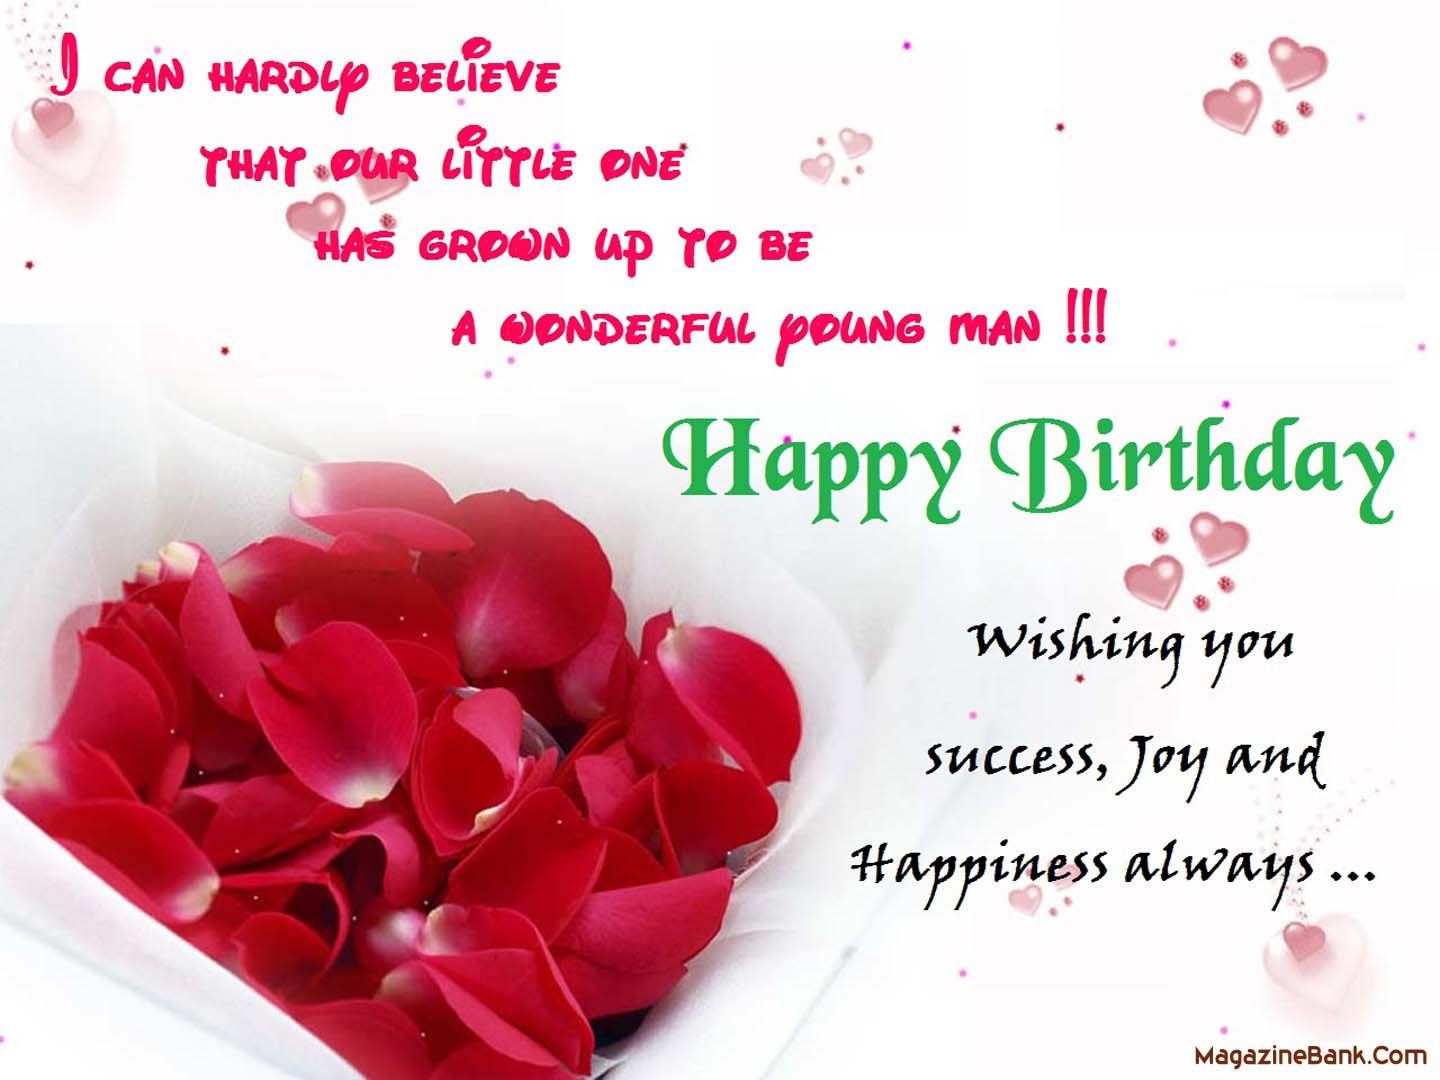 Happy Birthday Latest Quotes and Latest Images Free Download – Free Birthday Sms Cards